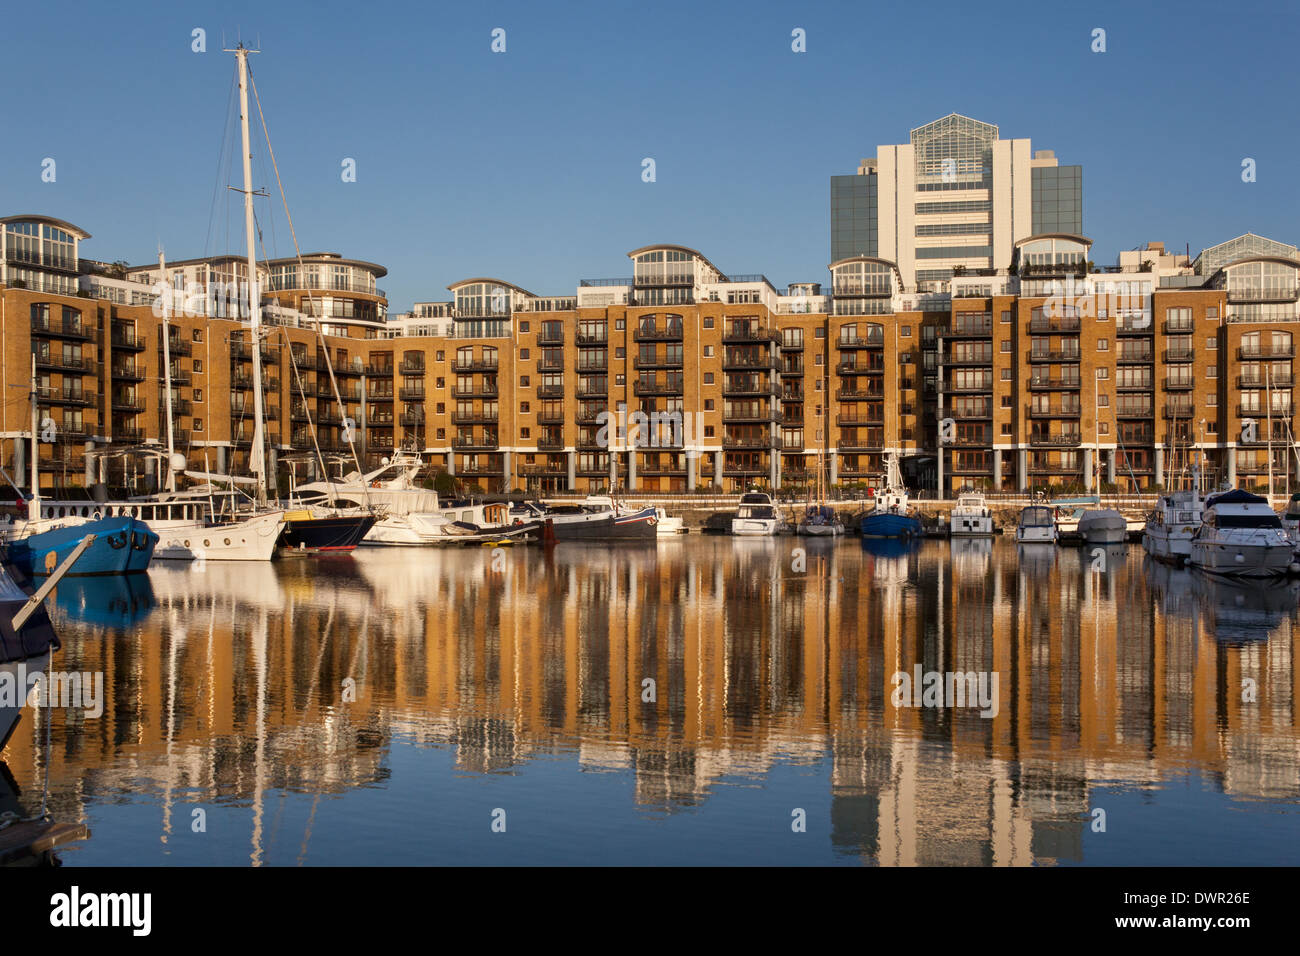 Executive apartments of Sandpiper Court at St. Katharine's Dockyard in Tower Hill in London in the United Kingdom. - Stock Image